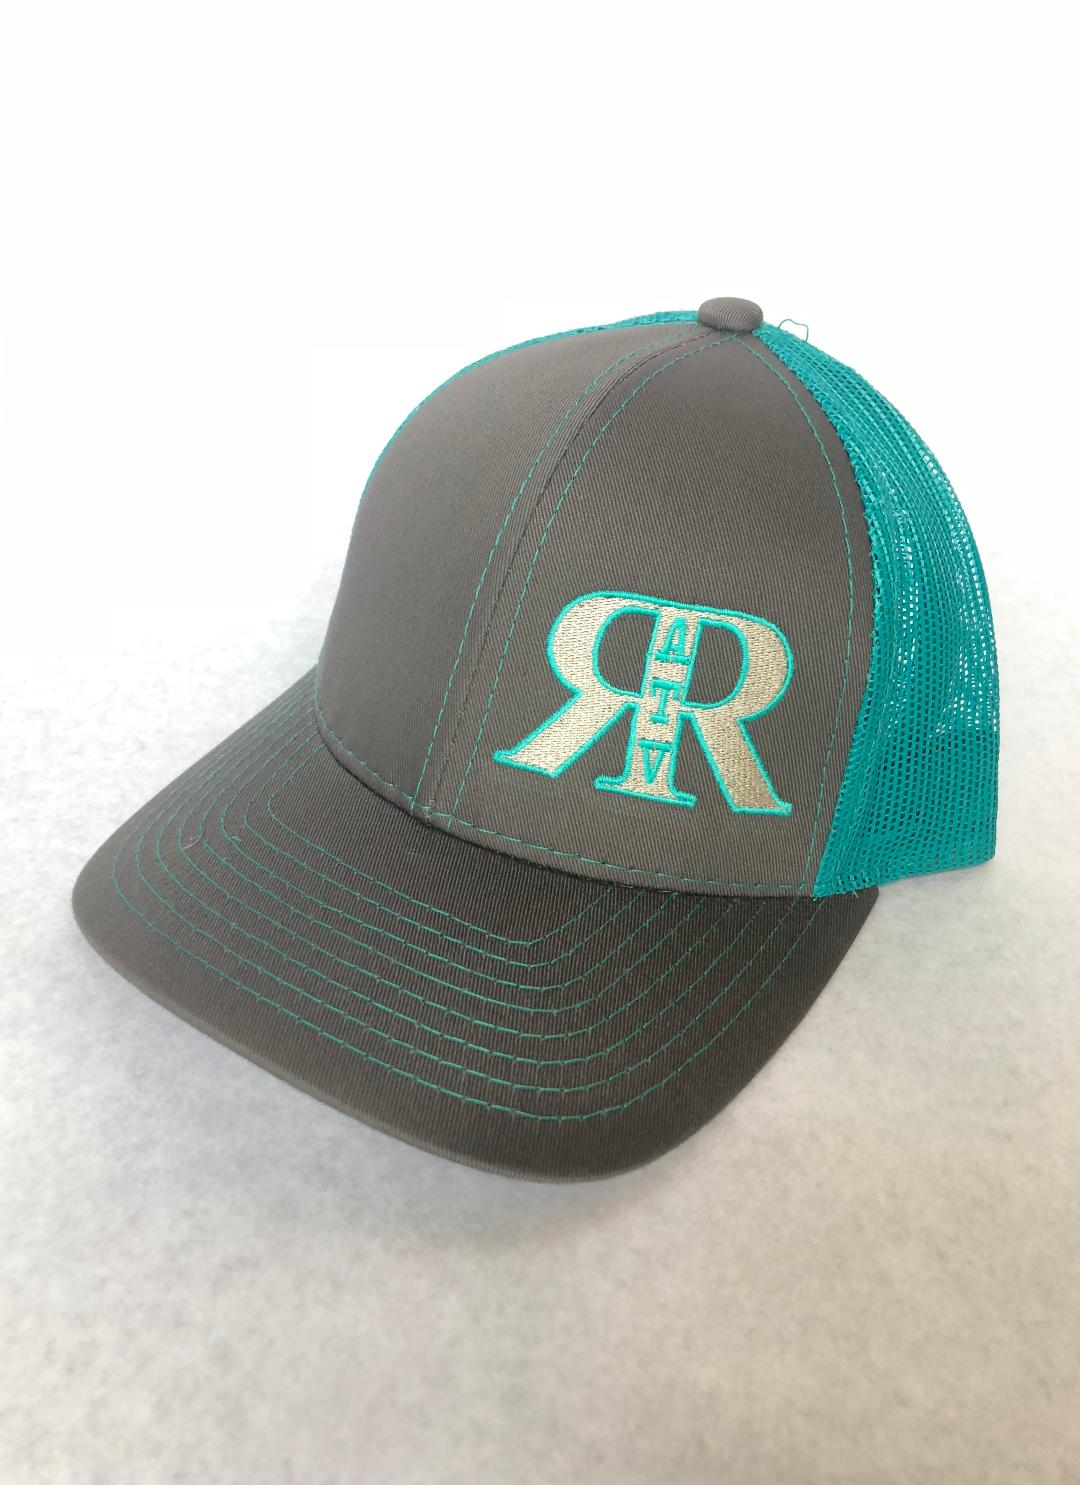 River Run ATV Park Charcoal & Aqua Platinum Series Snap Back Hat - ProSport Outdoors